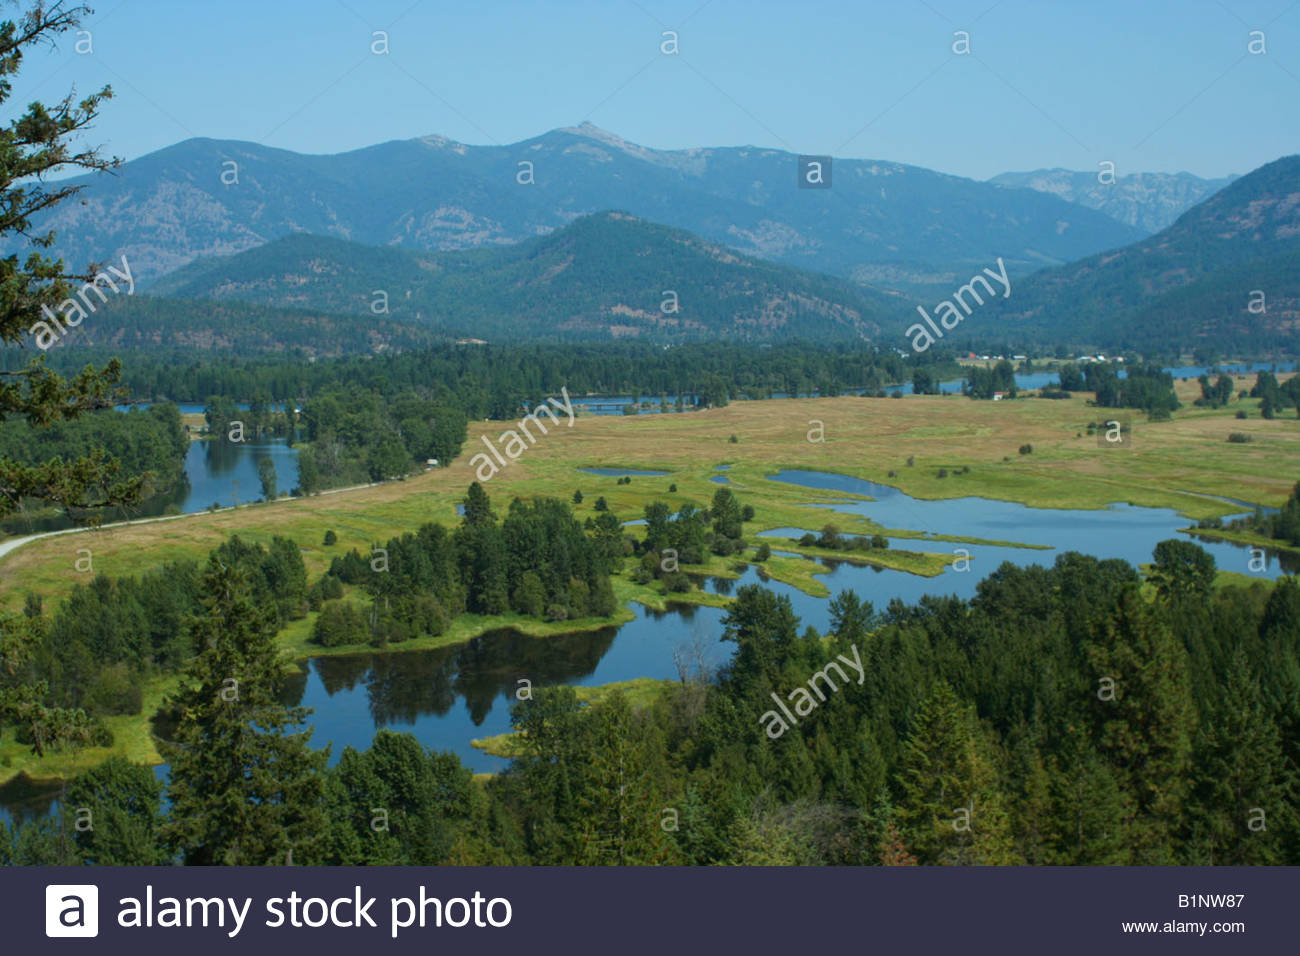 The Clarkfork River Drainage And The Cabinet Mountains Of The Kaniksu  National Forest Idaho   Stock